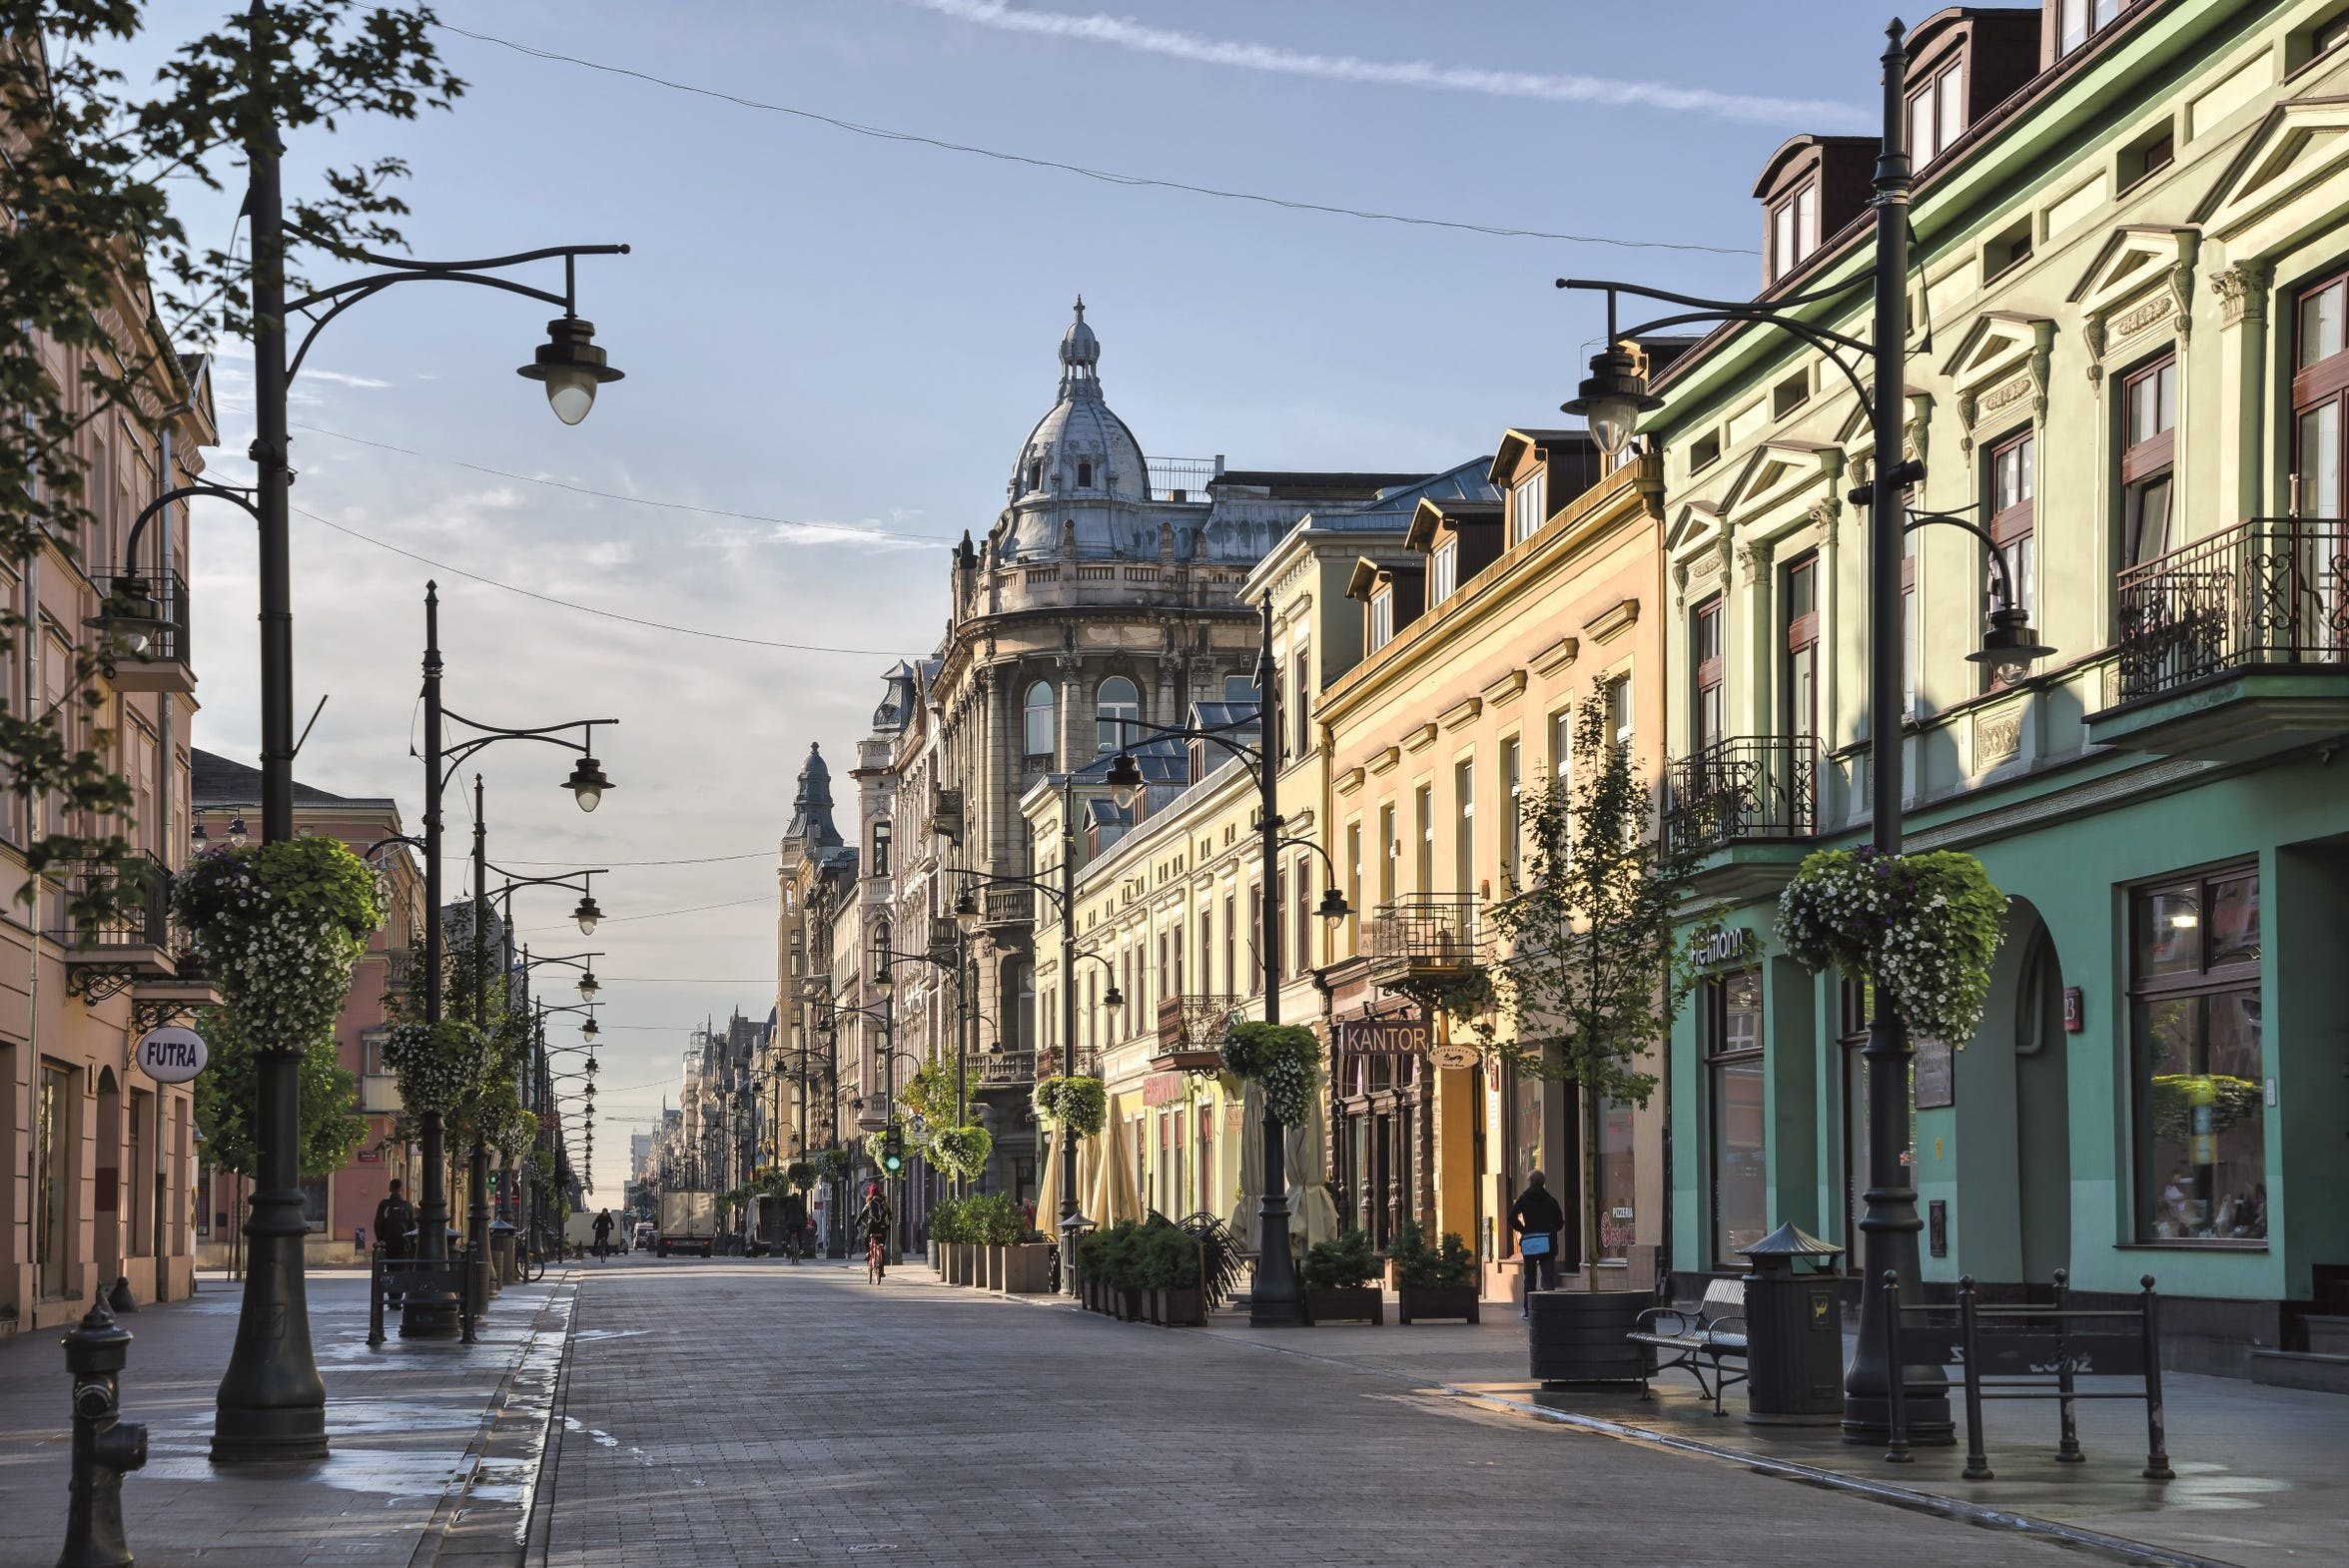 Today, Lodz is a popular tourist destination in Poland.